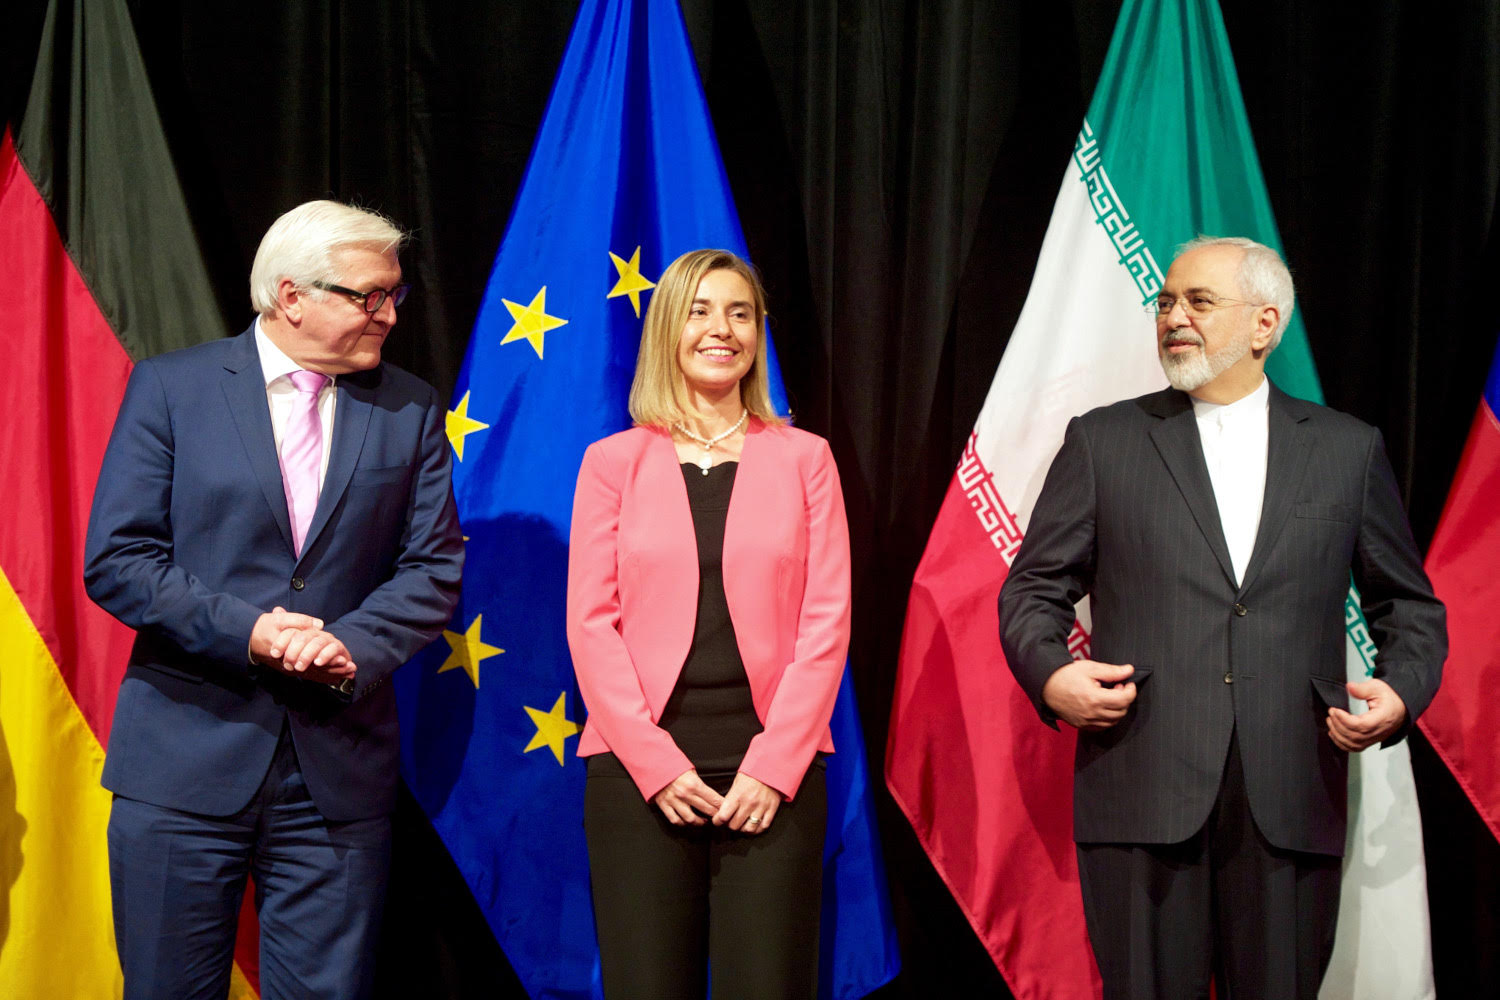 Europe bypasses the U.S. getting around the reimposed sanctions on Iran